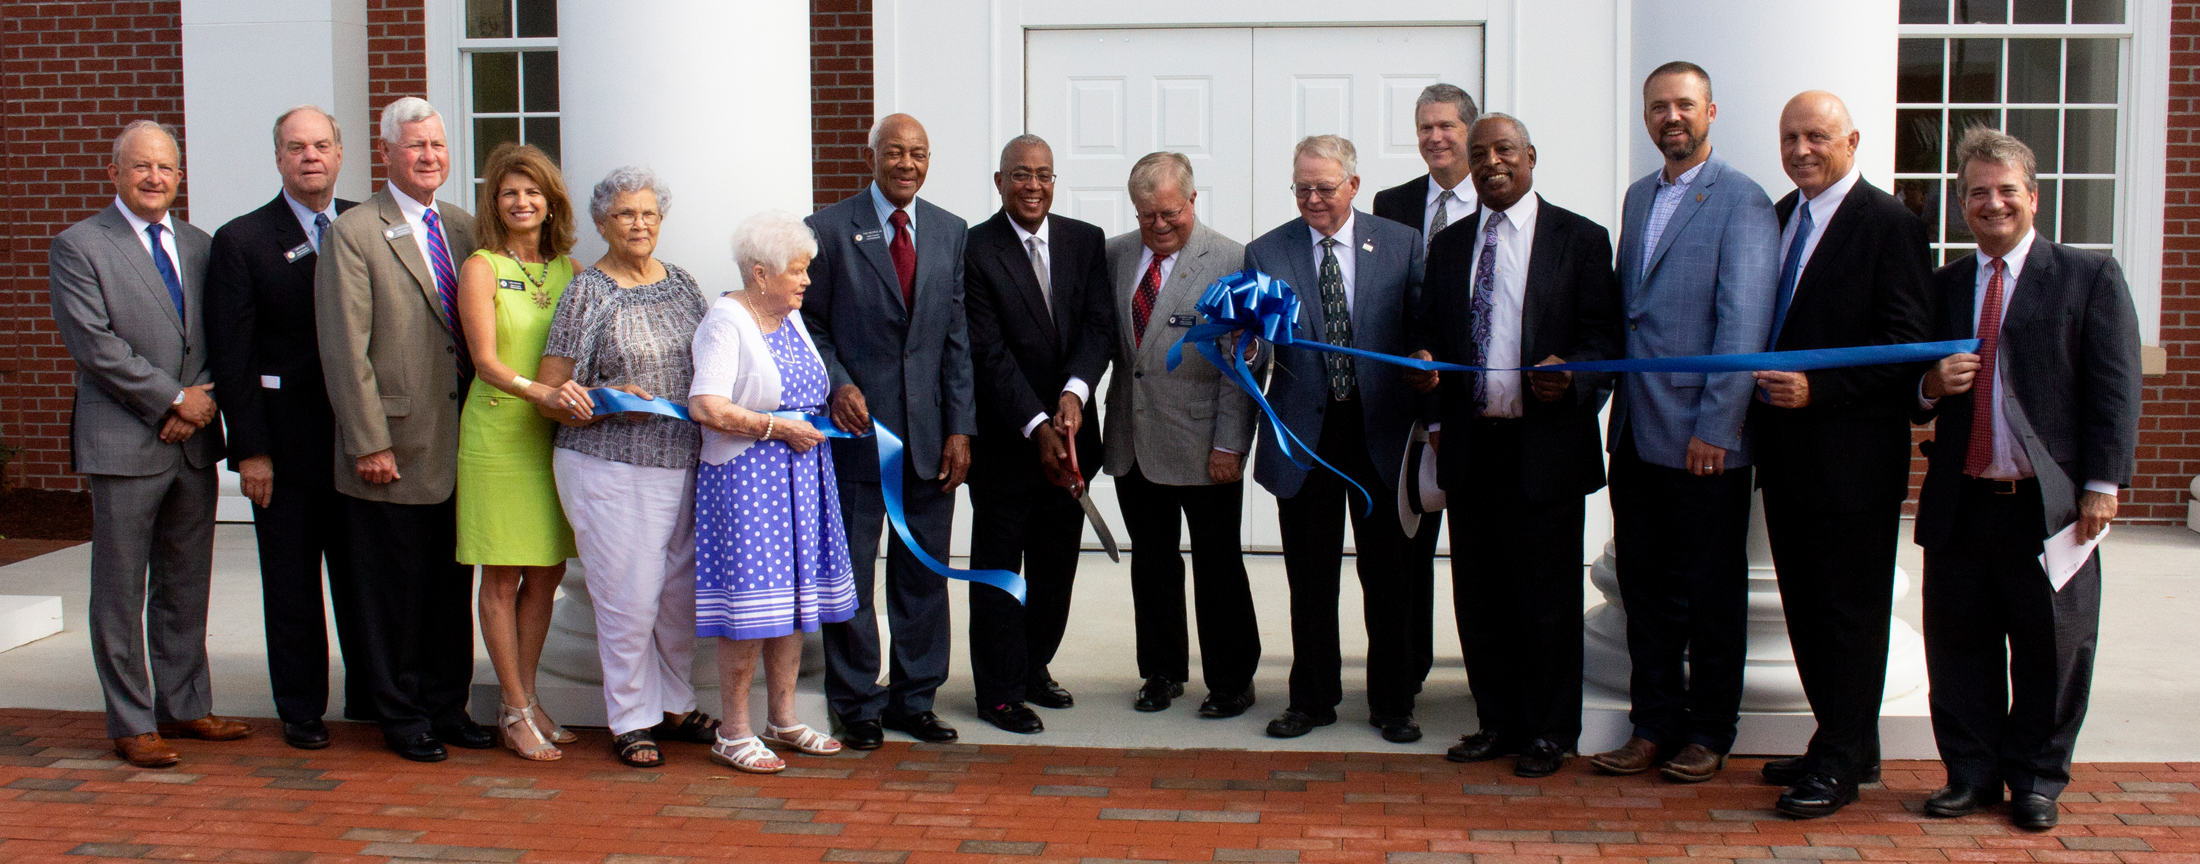 Ribbon Cut